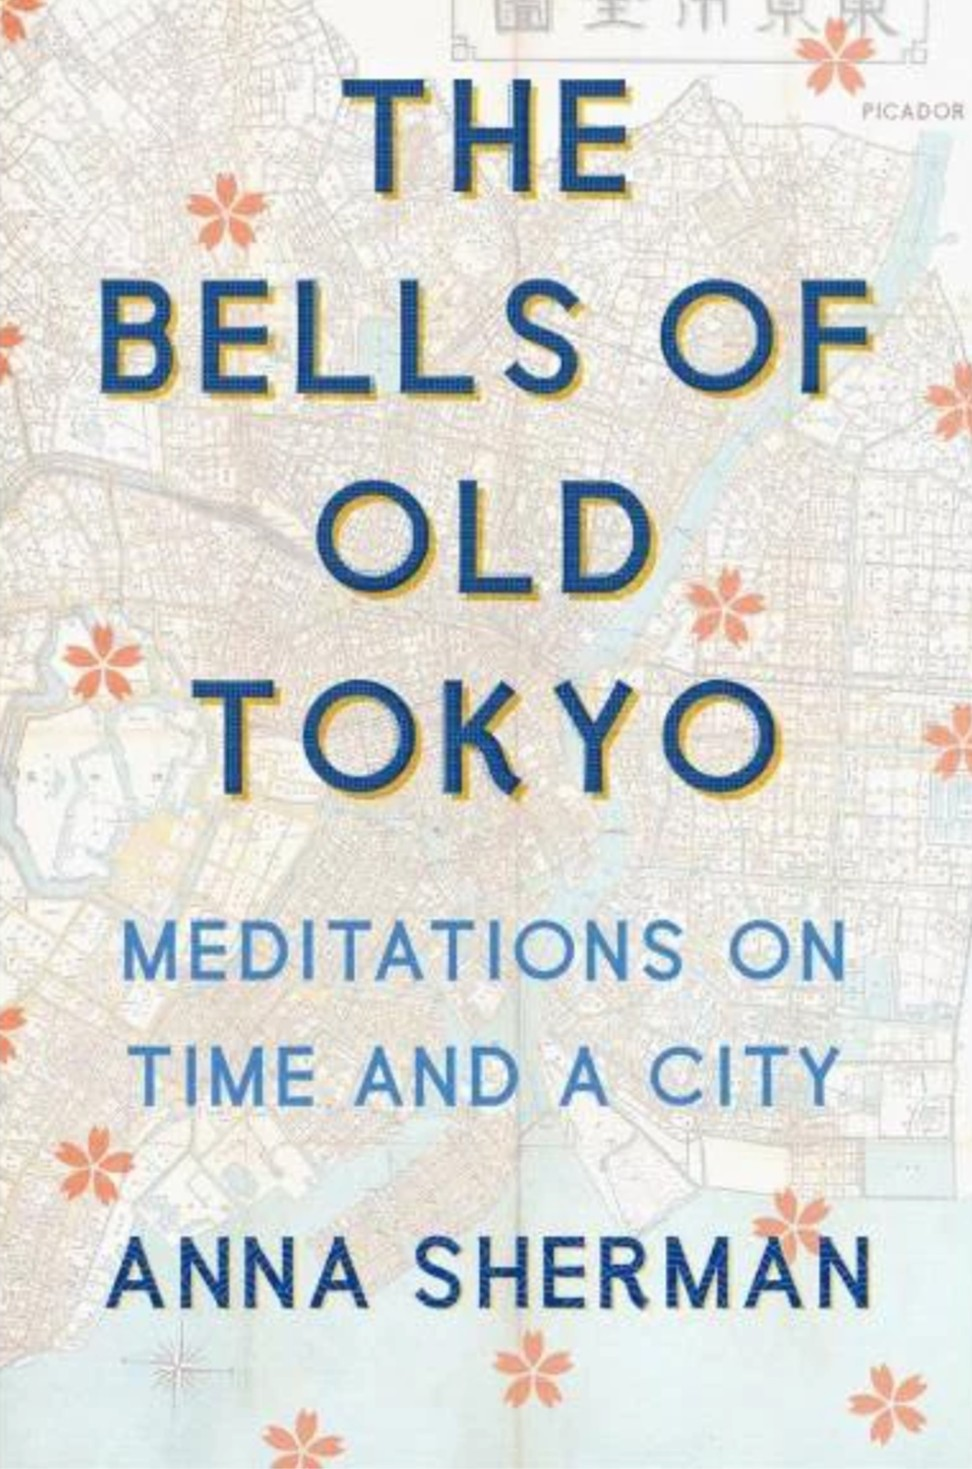 In The Bells of Old Tokyo, writer examines the Japanese concept of time